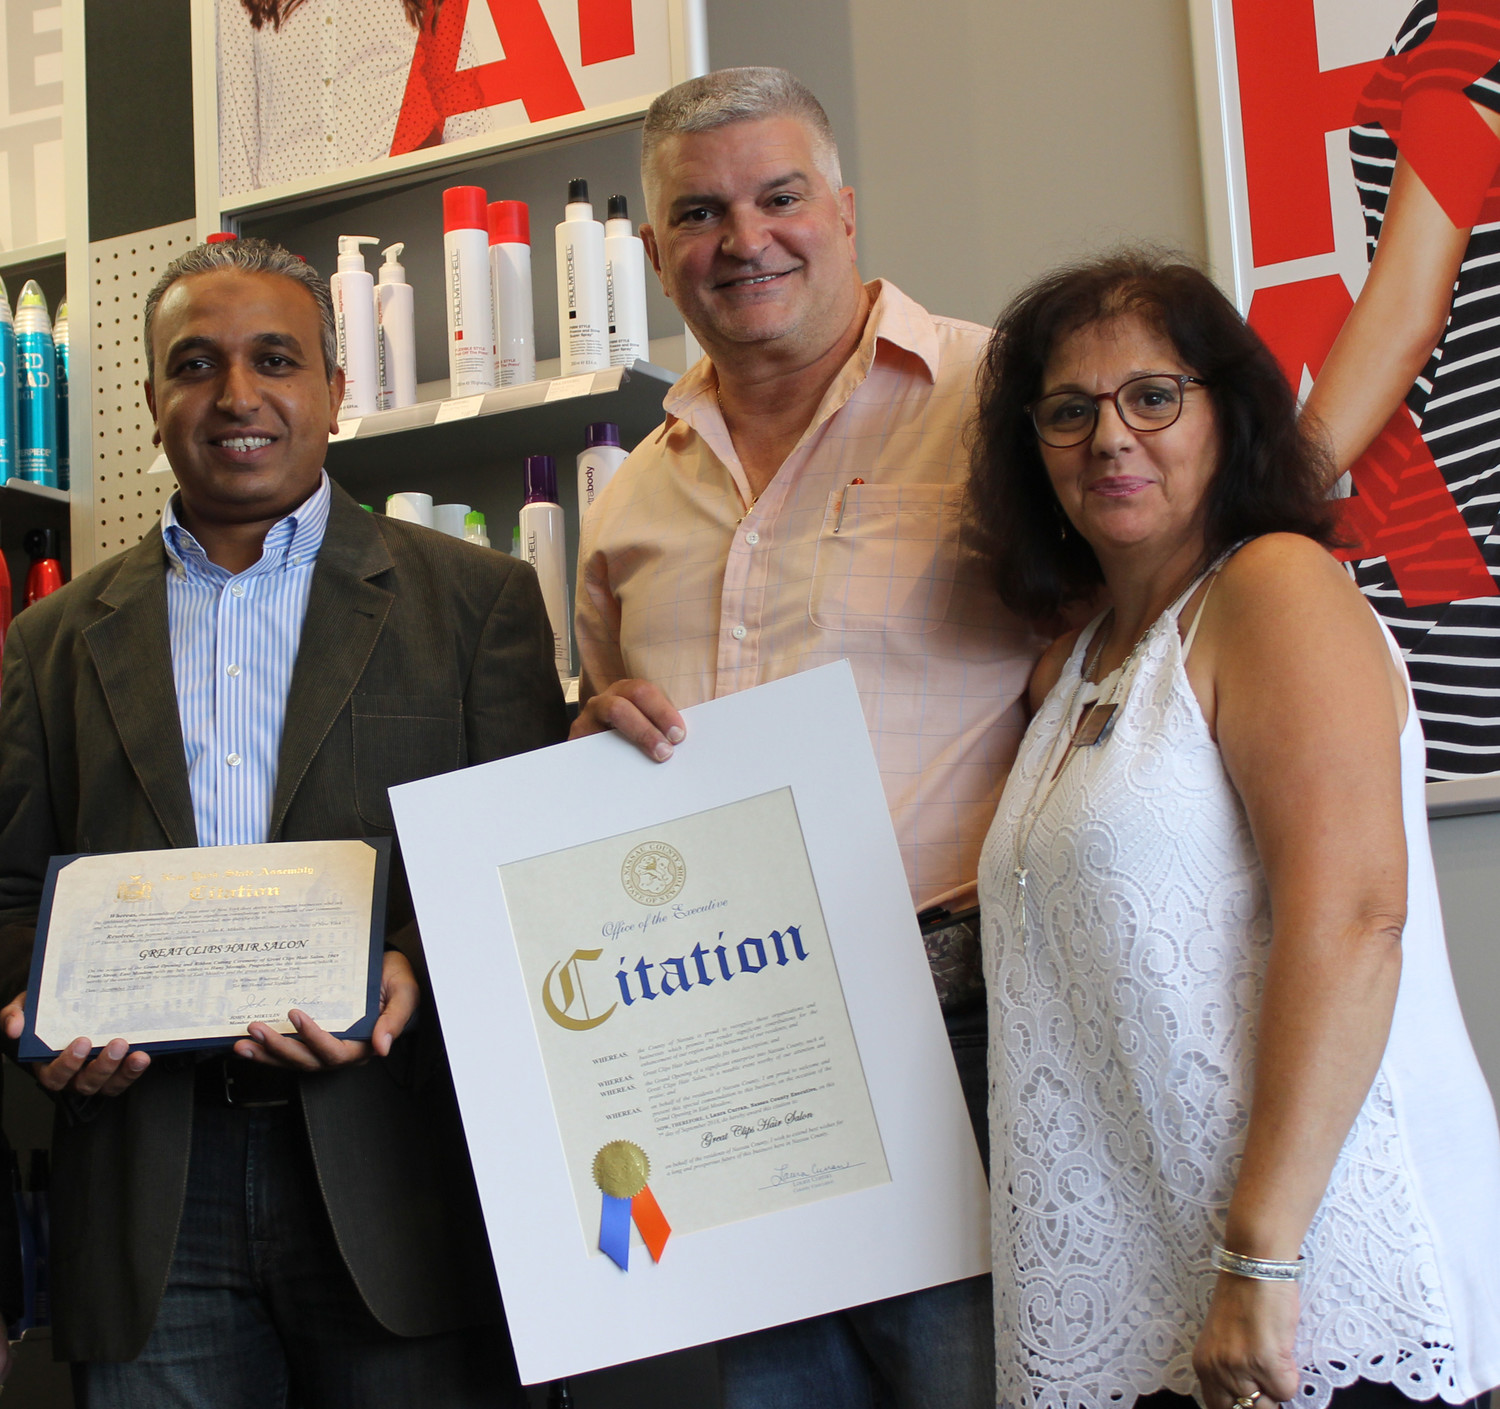 Hany Mostafa, left, thanked Frank Camarano, the president of the Chamber of Commerce, and Christine Mooney, the Chambers vice president, for welcoming his business to the community.